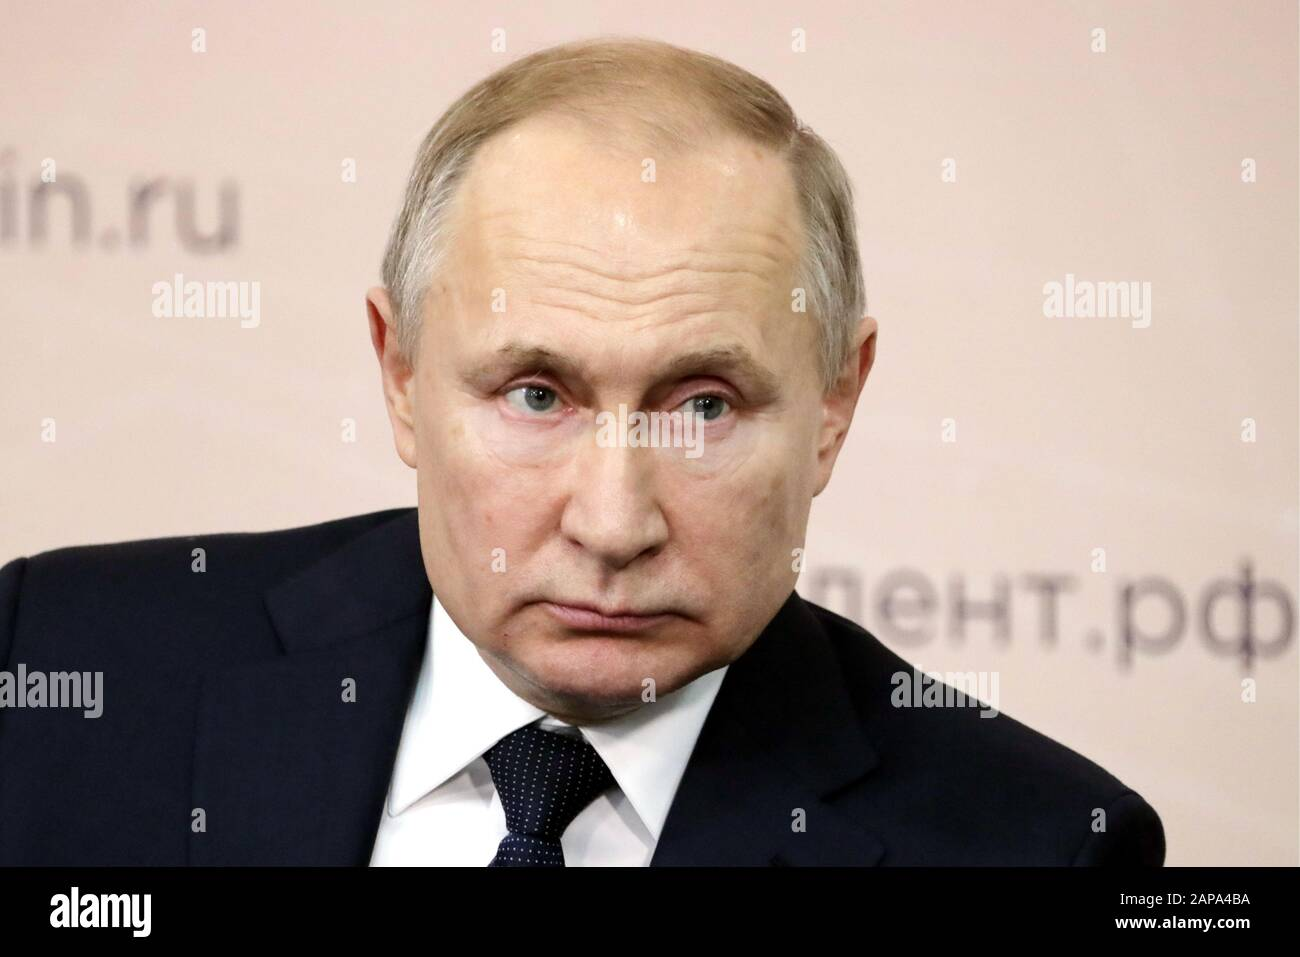 President Vladimir Putin Leisure In High Resolution Stock Photography And Images Alamy